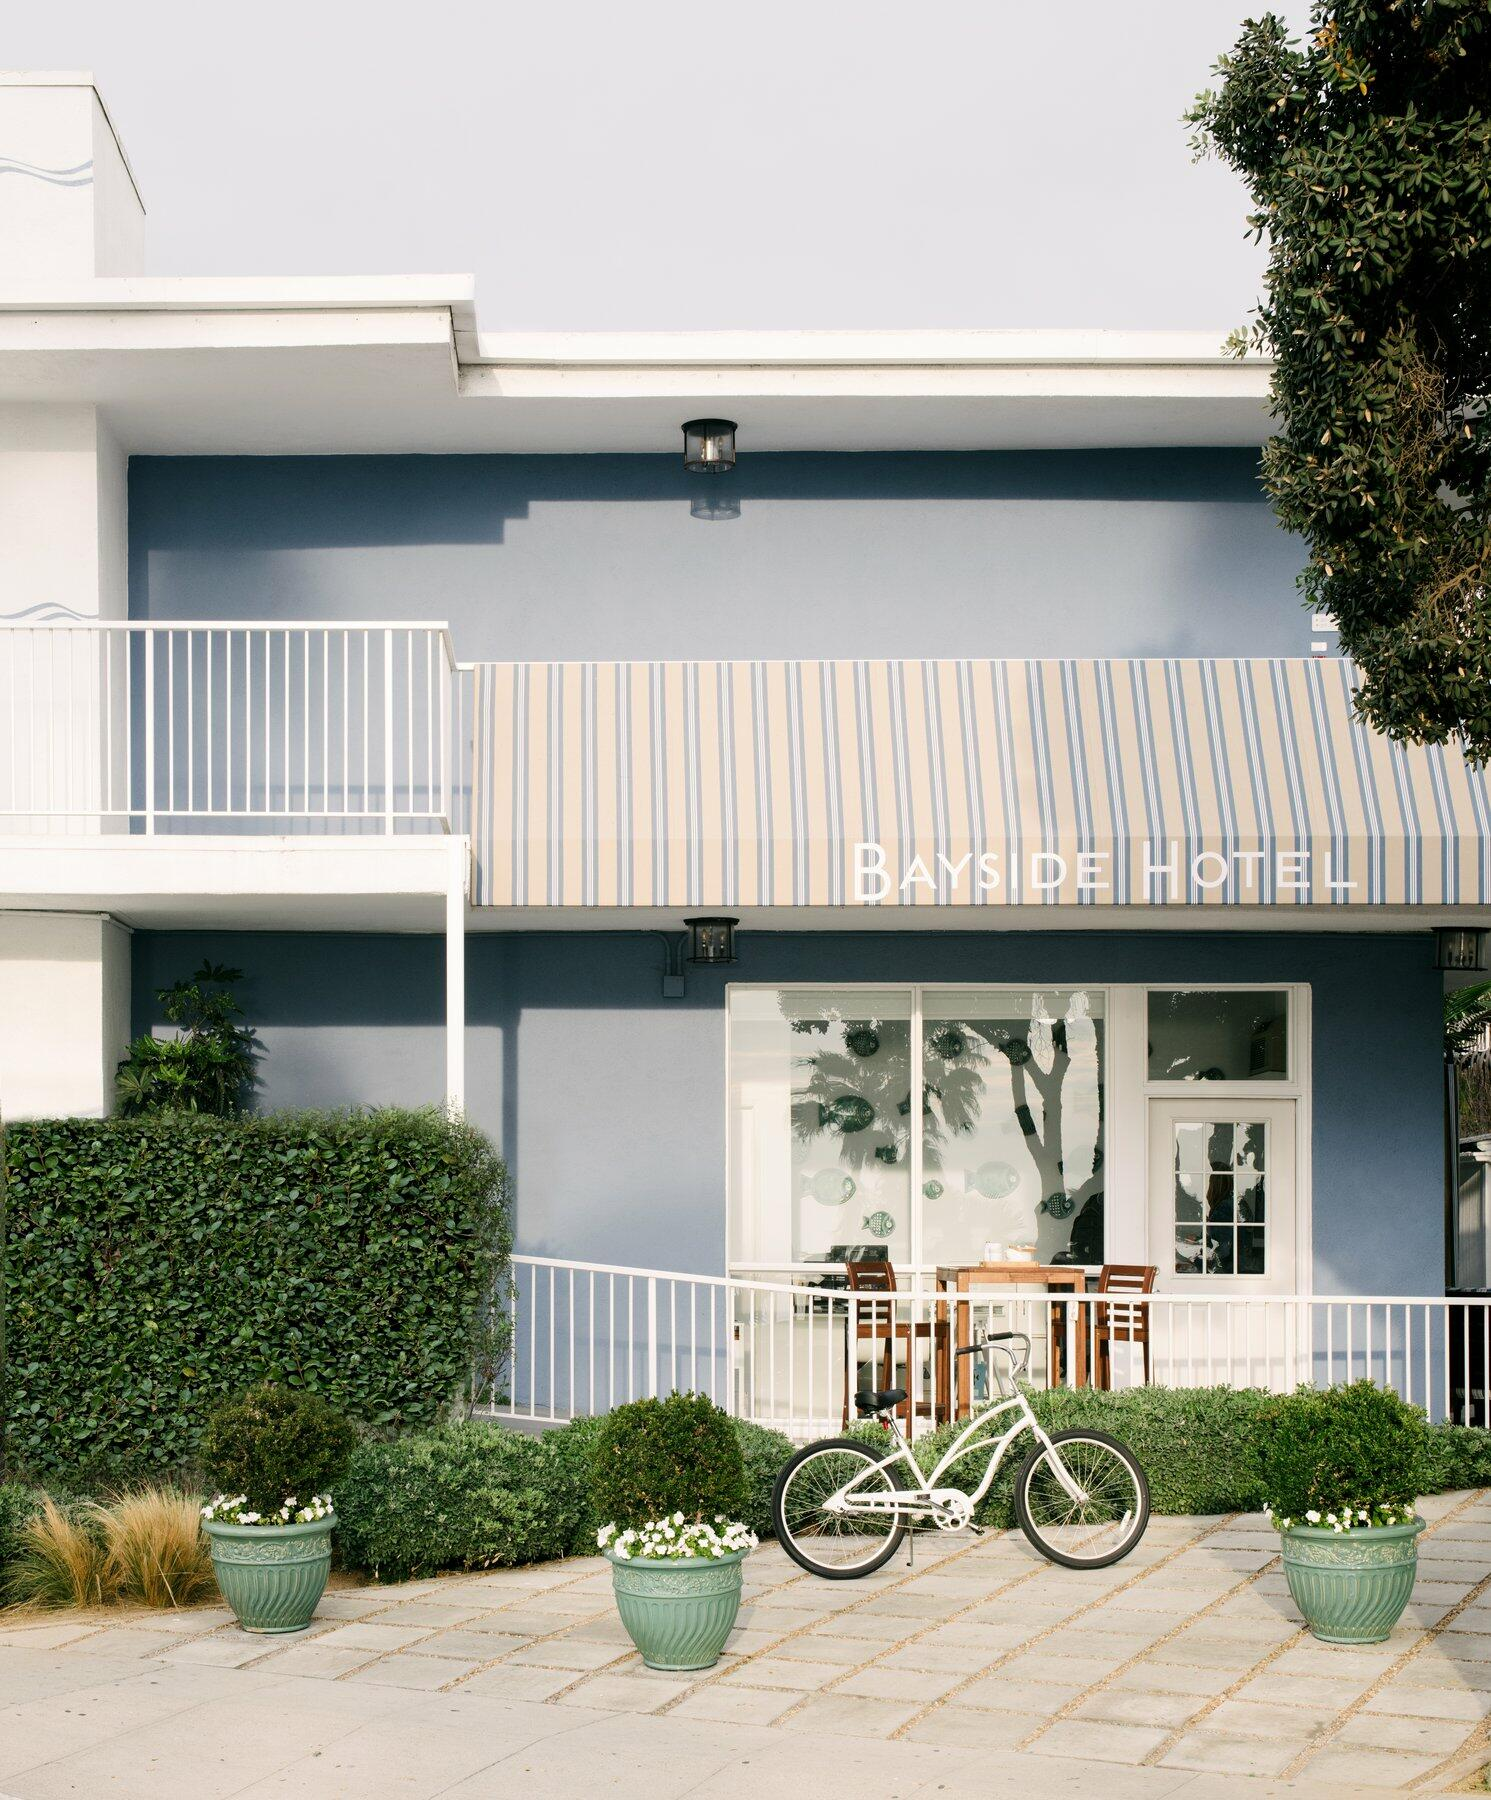 Hotel exterior with balcony and bicycle